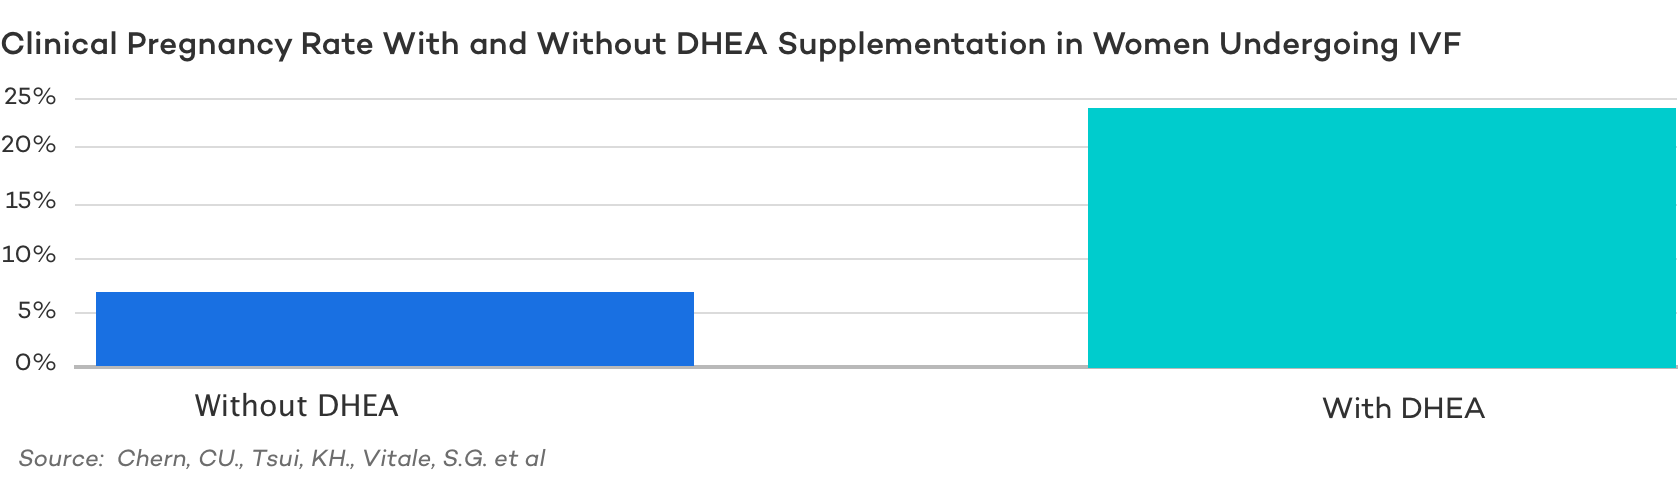 Clinical Pregnancy Rate With and Without DHEA Supplementation in Women Undergoing IVF